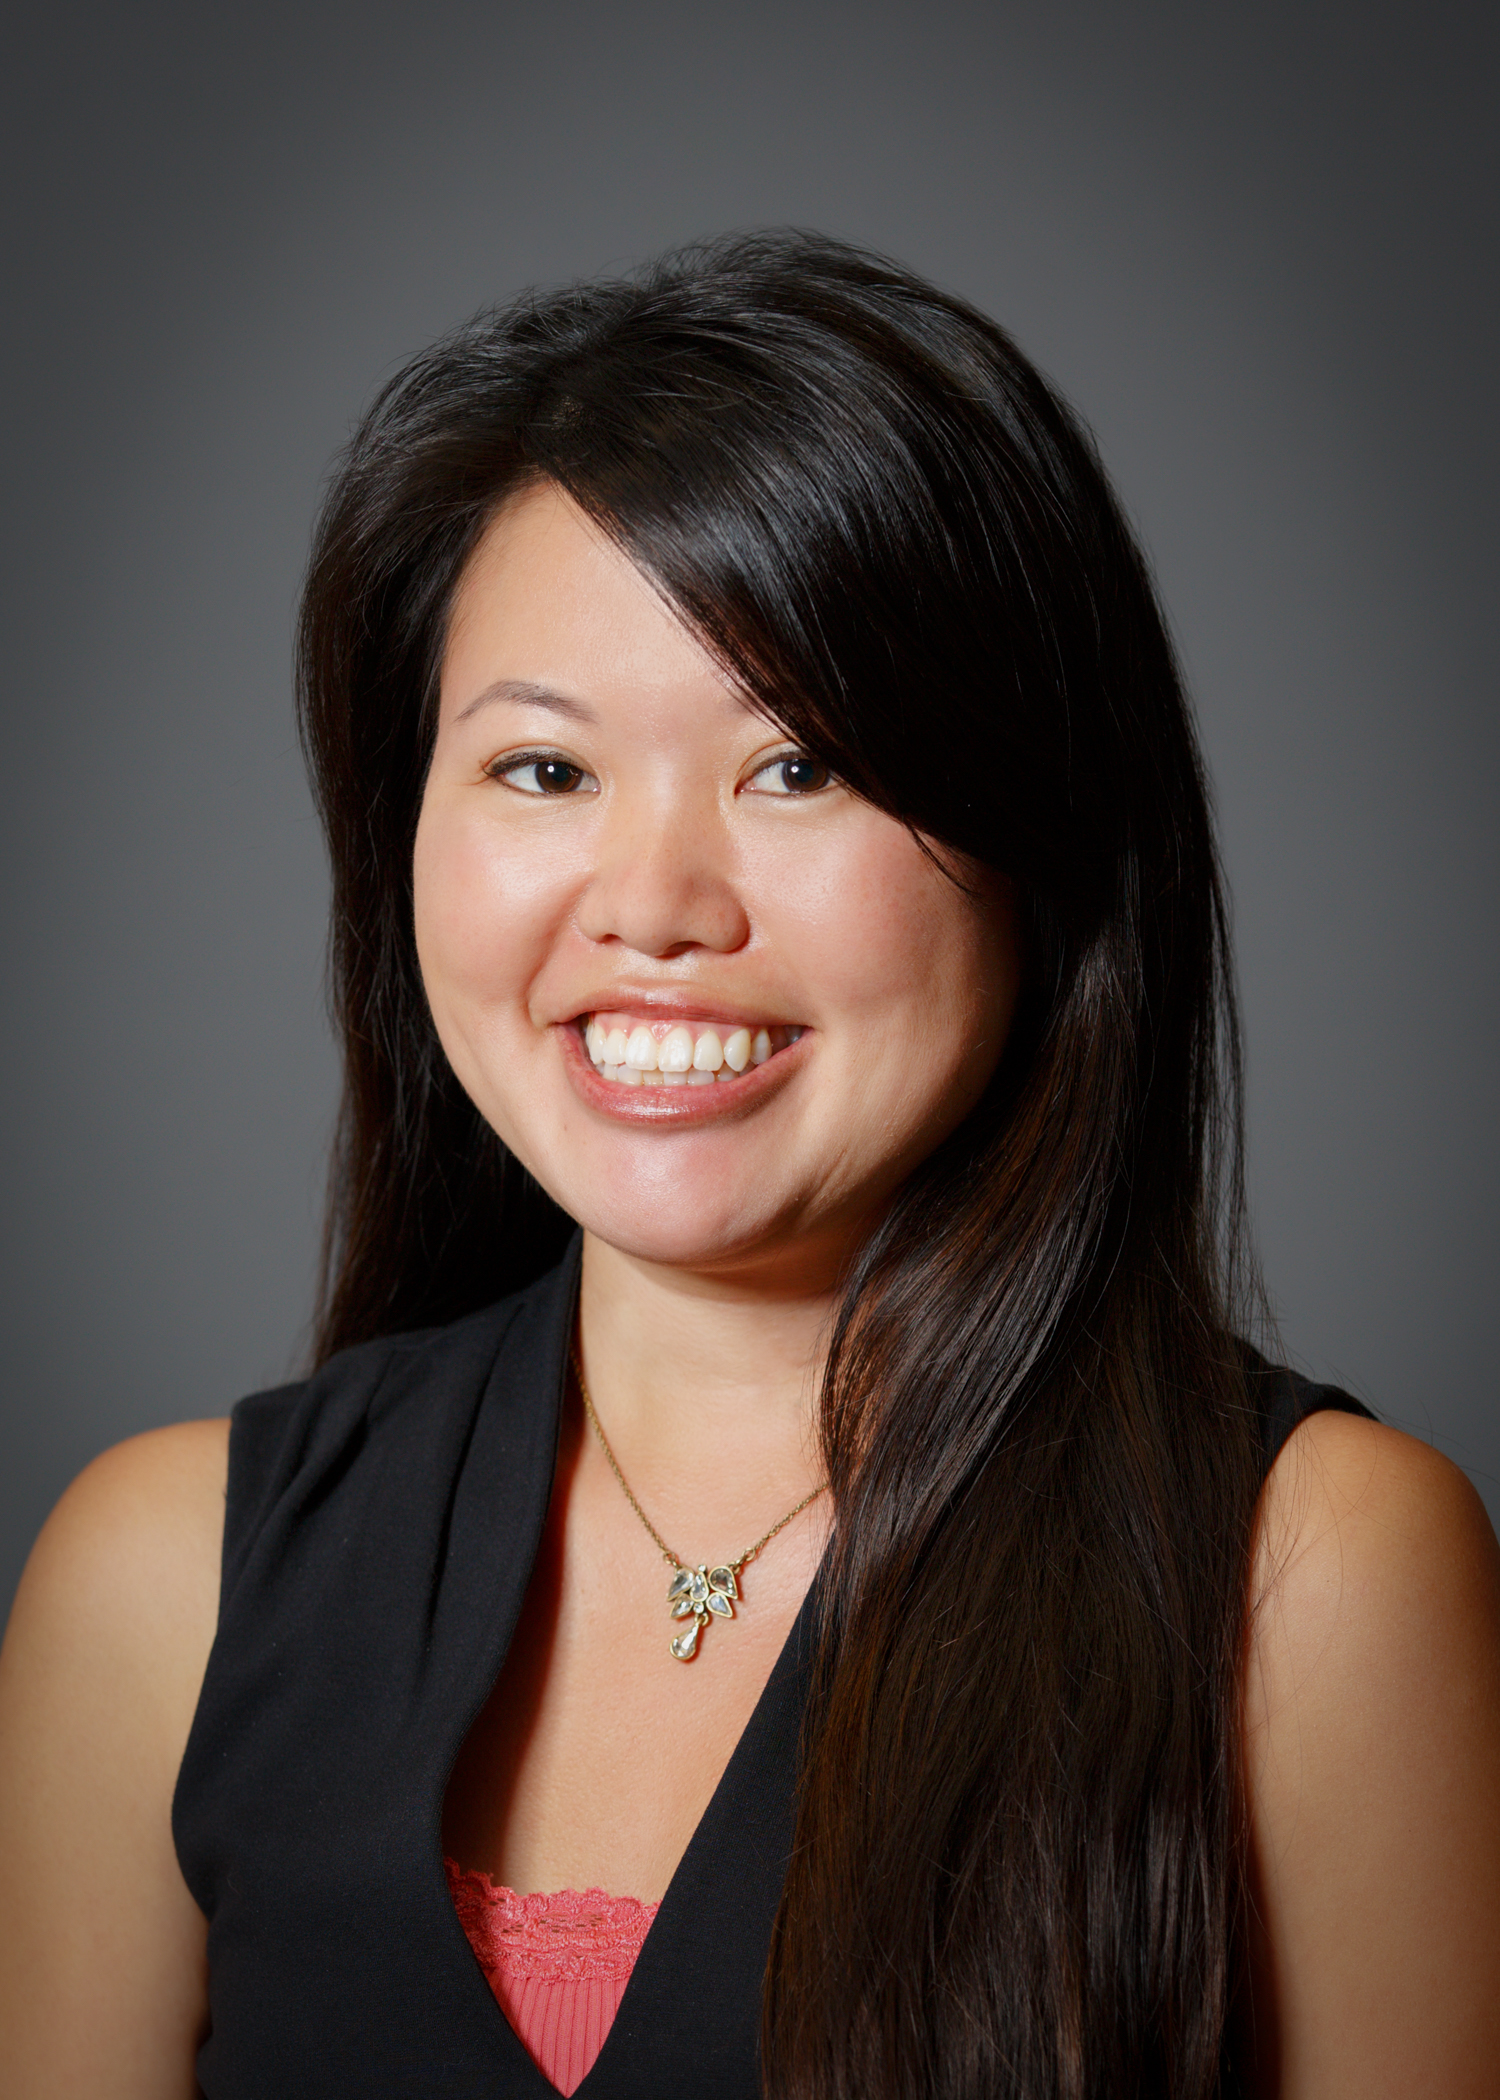 Kara Miyasoto  Director of Marketing, Stryker Flex Financial